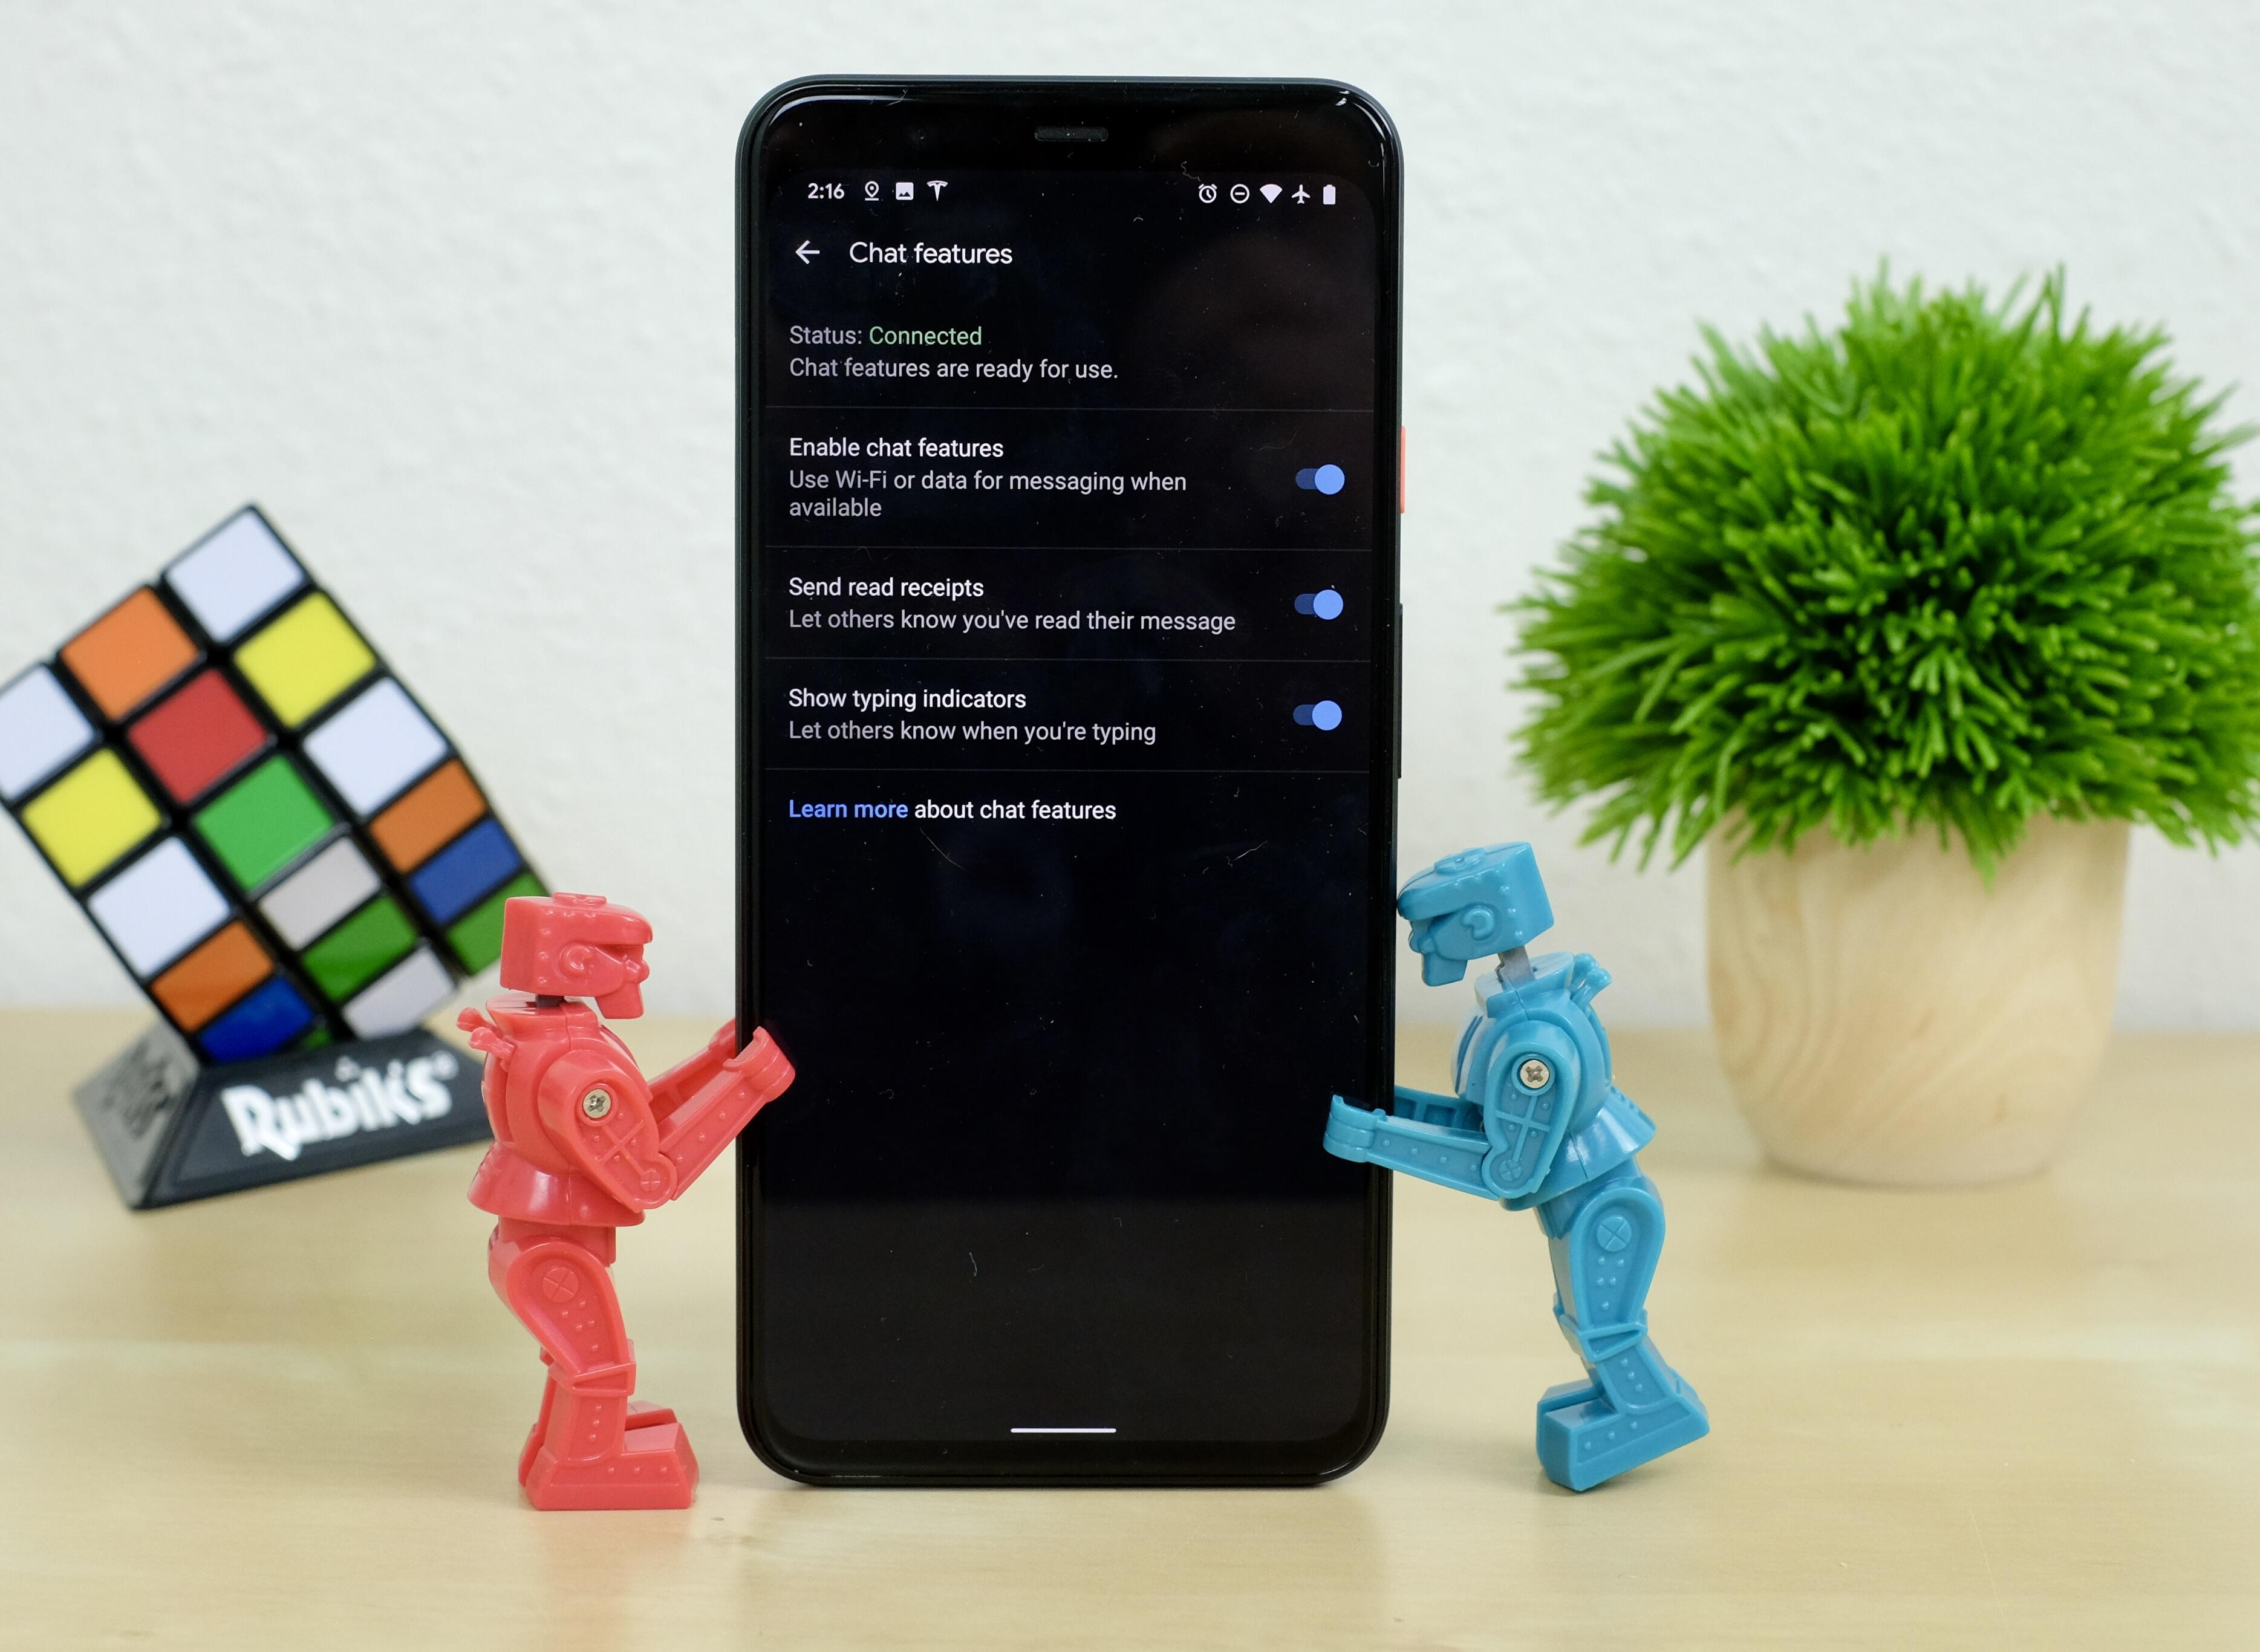 chat-feature-enabled-on-pixel-4-xl